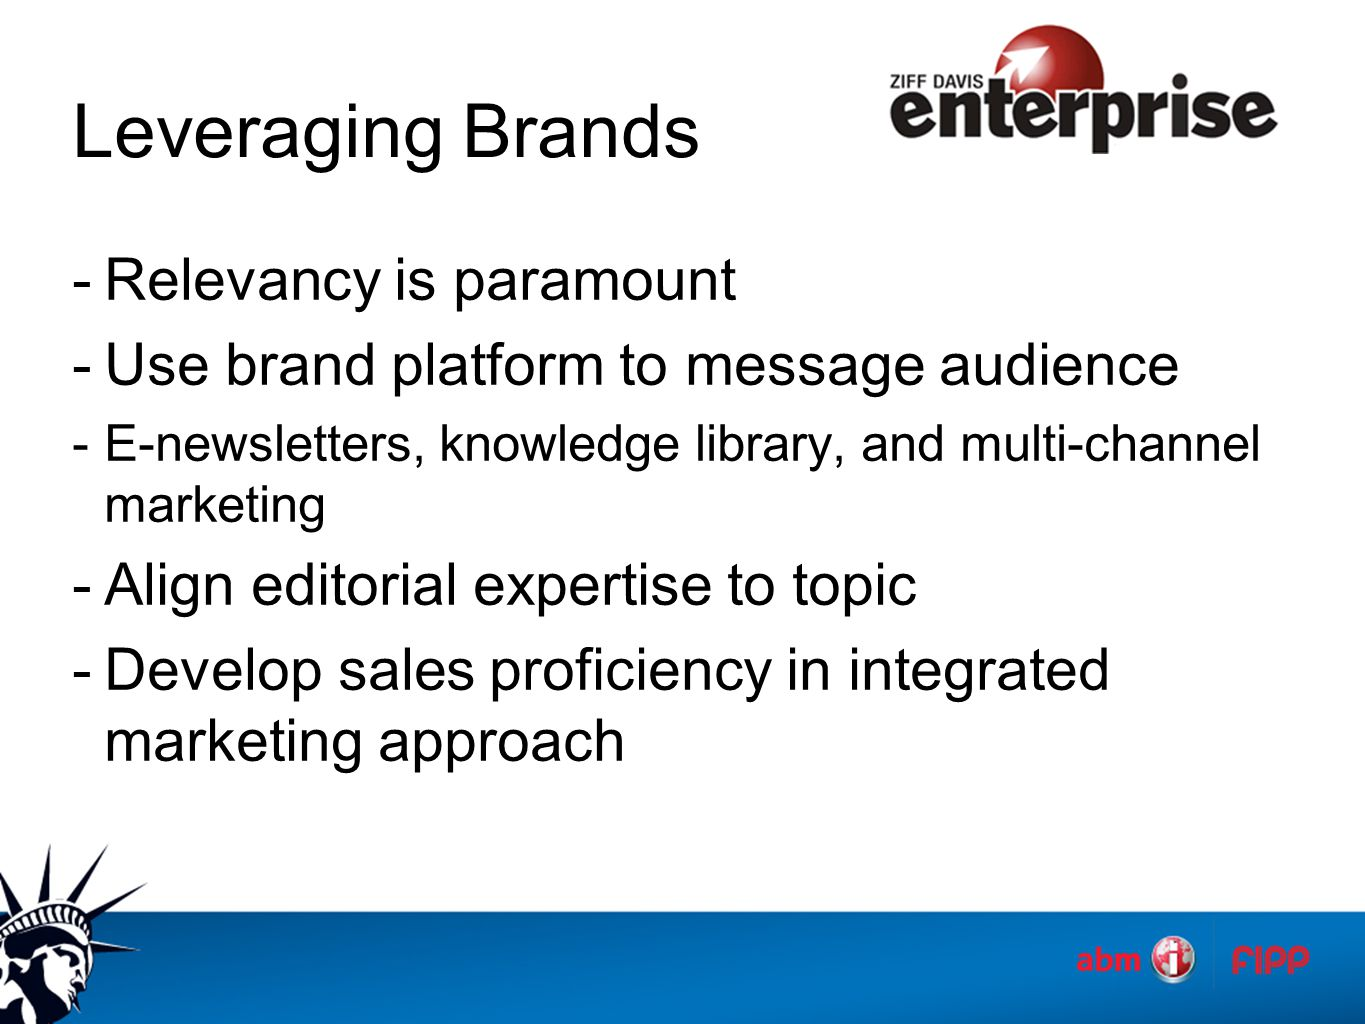 Leveraging Brands -Relevancy is paramount -Use brand platform to message audience -E-newsletters, knowledge library, and multi-channel marketing -Align editorial expertise to topic -Develop sales proficiency in integrated marketing approach